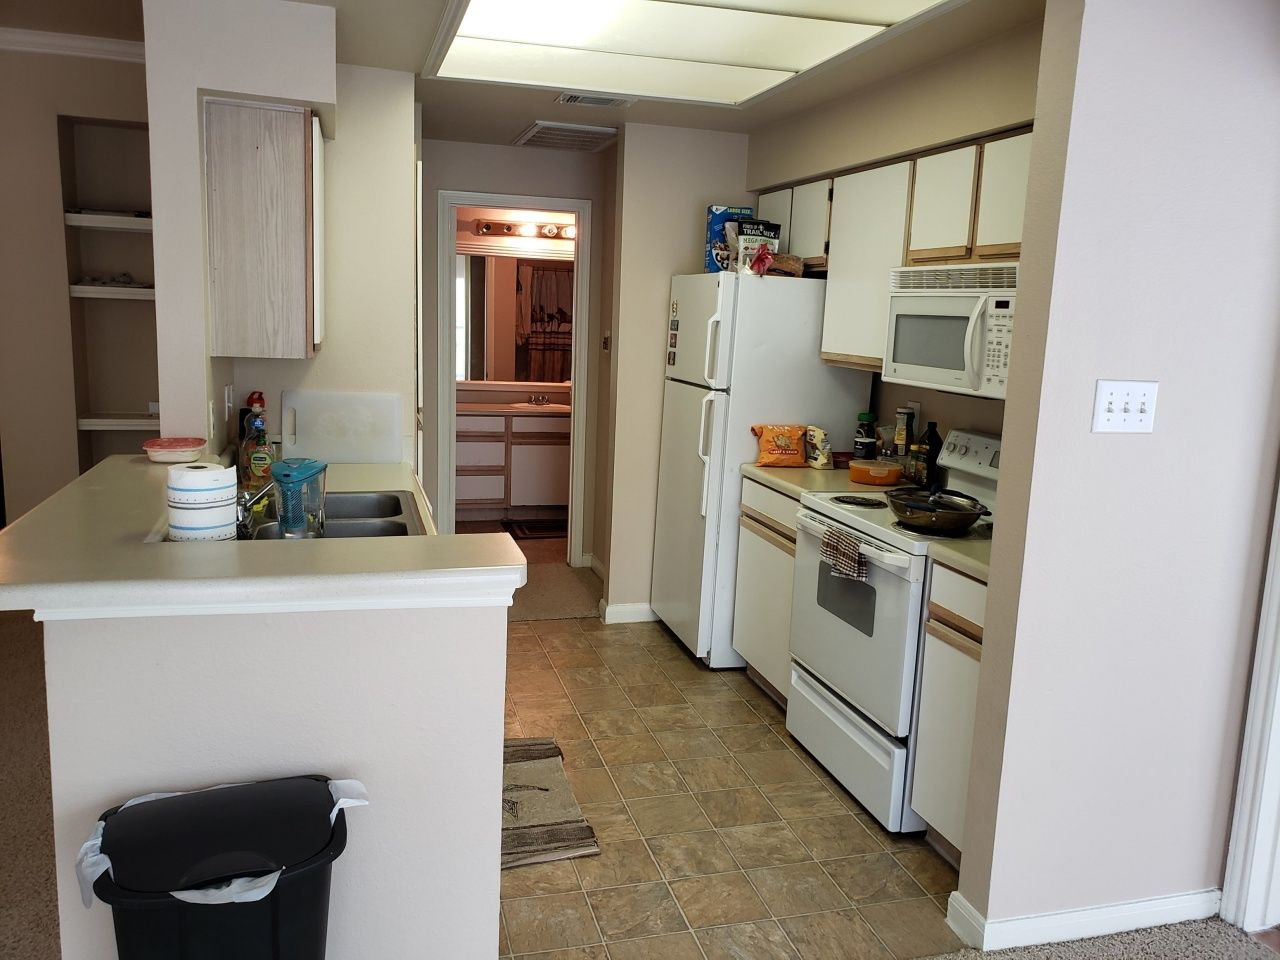 1 Bedroom Apartments For Rent In San Diego In 2020 Cheap Apartment For Rent One Bedroom House Cheap Apartment